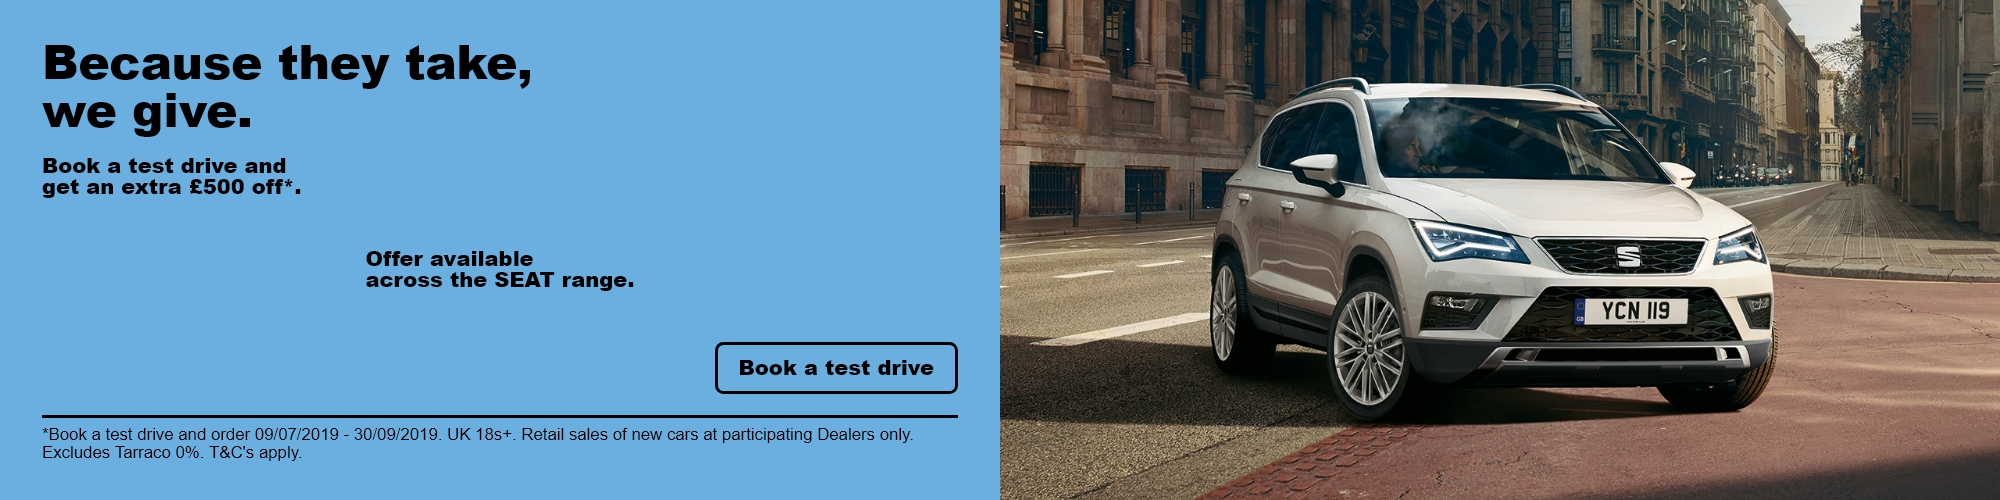 SEAT £500 Test Drive Offer